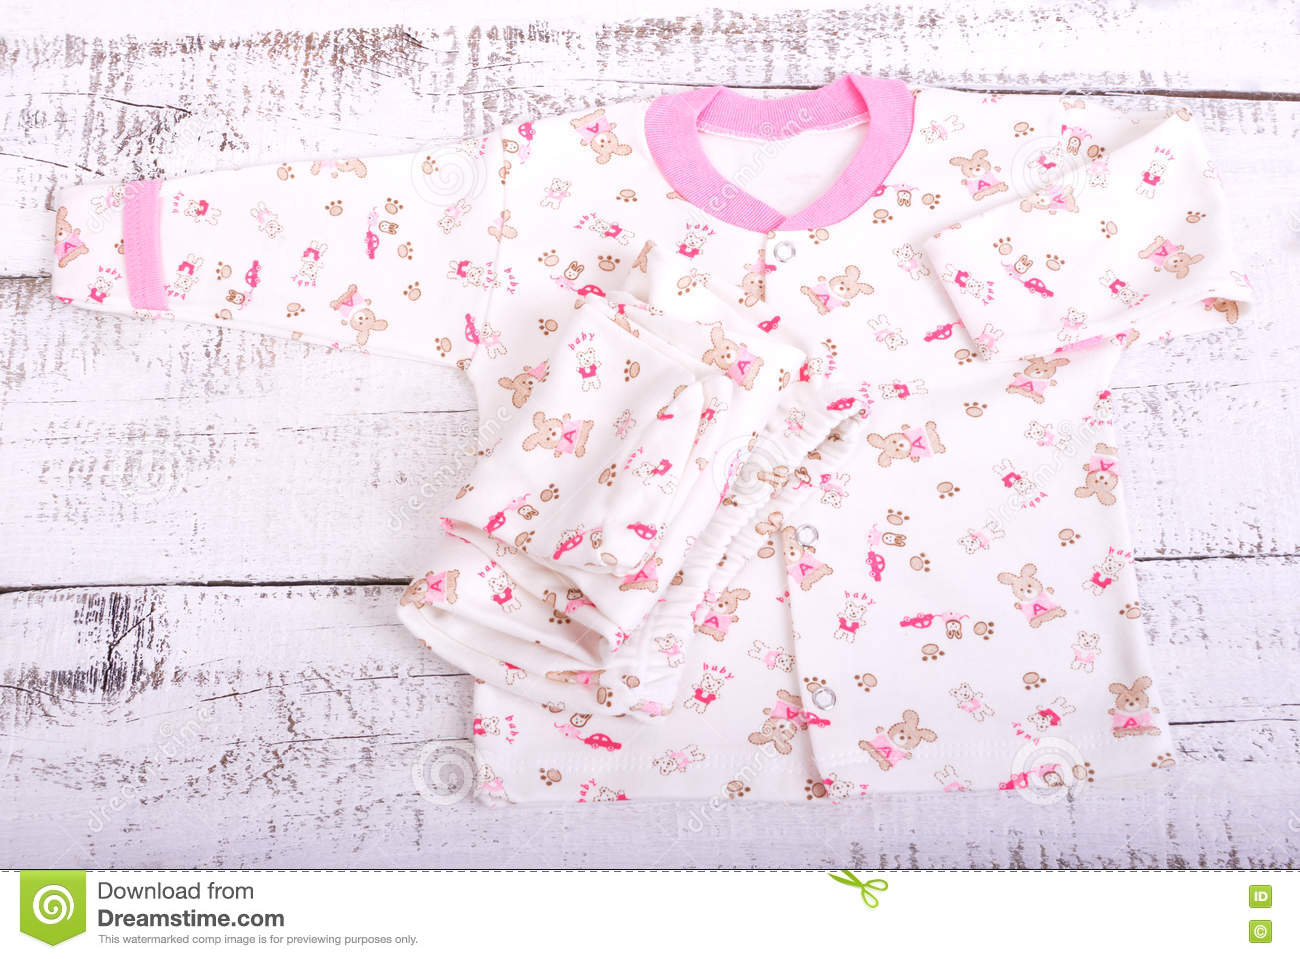 eeeb9480b Baby Goods Hanging On The Clothesline. Baby Blouse And Pants Sliders ...